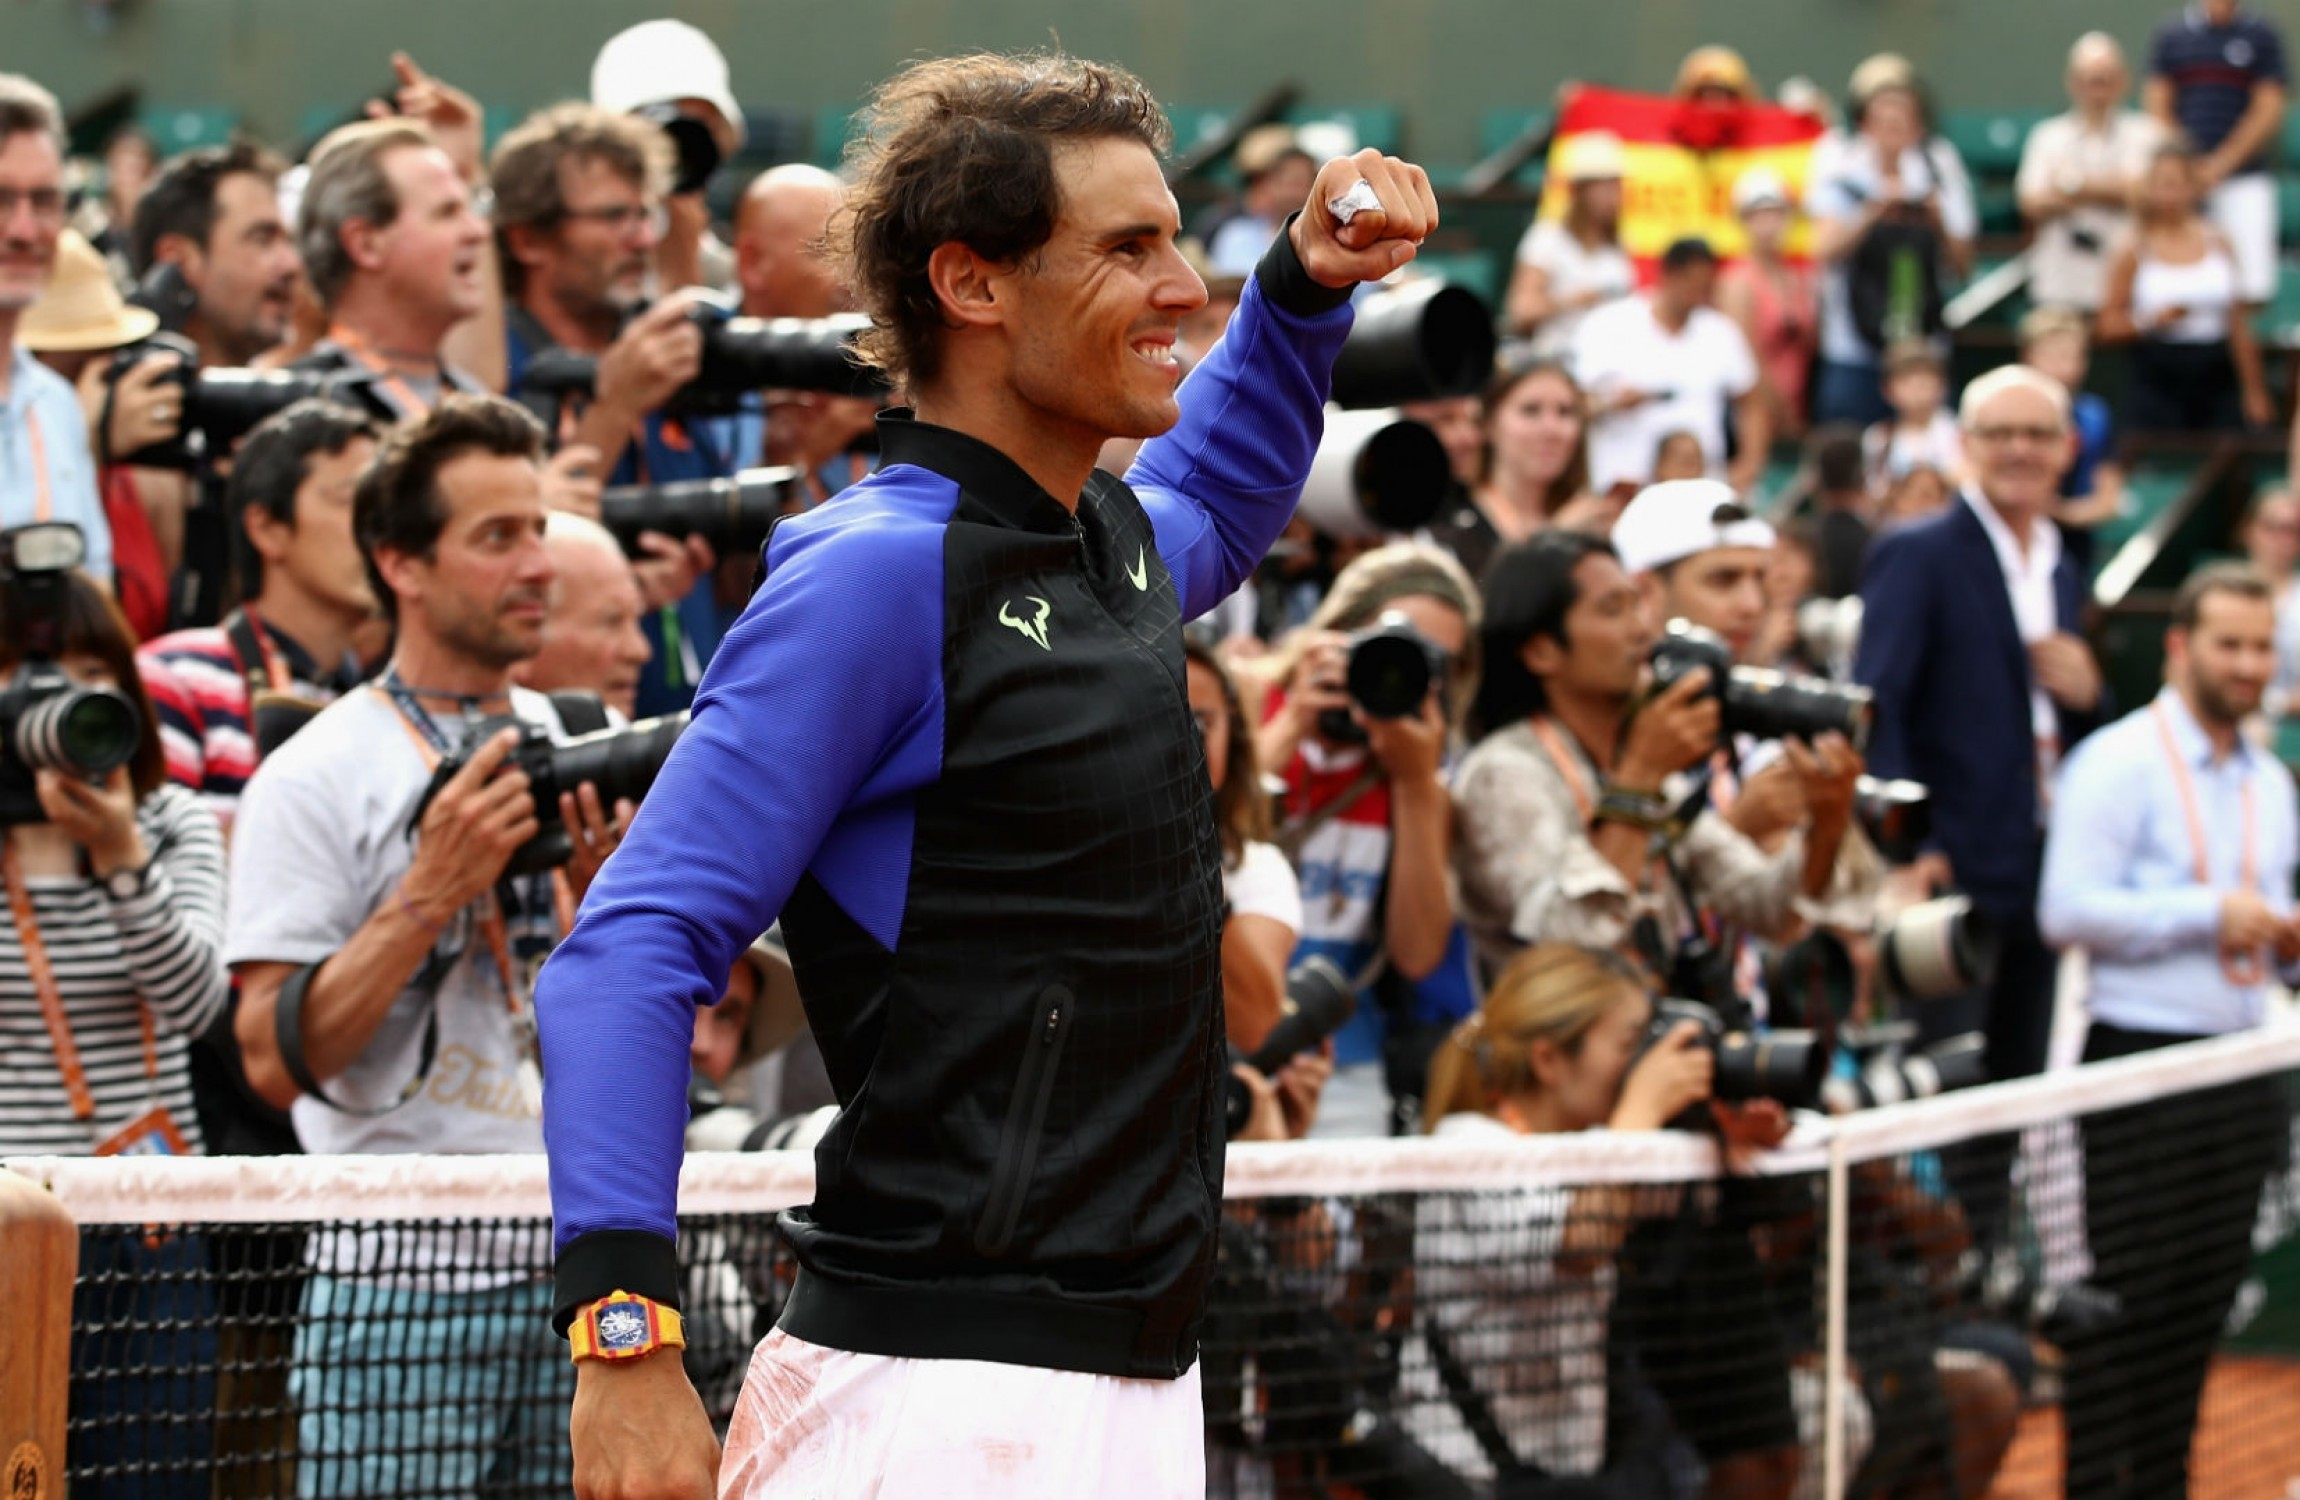 Rafael Nadal expresses cautious optimism heading into Wimbledon